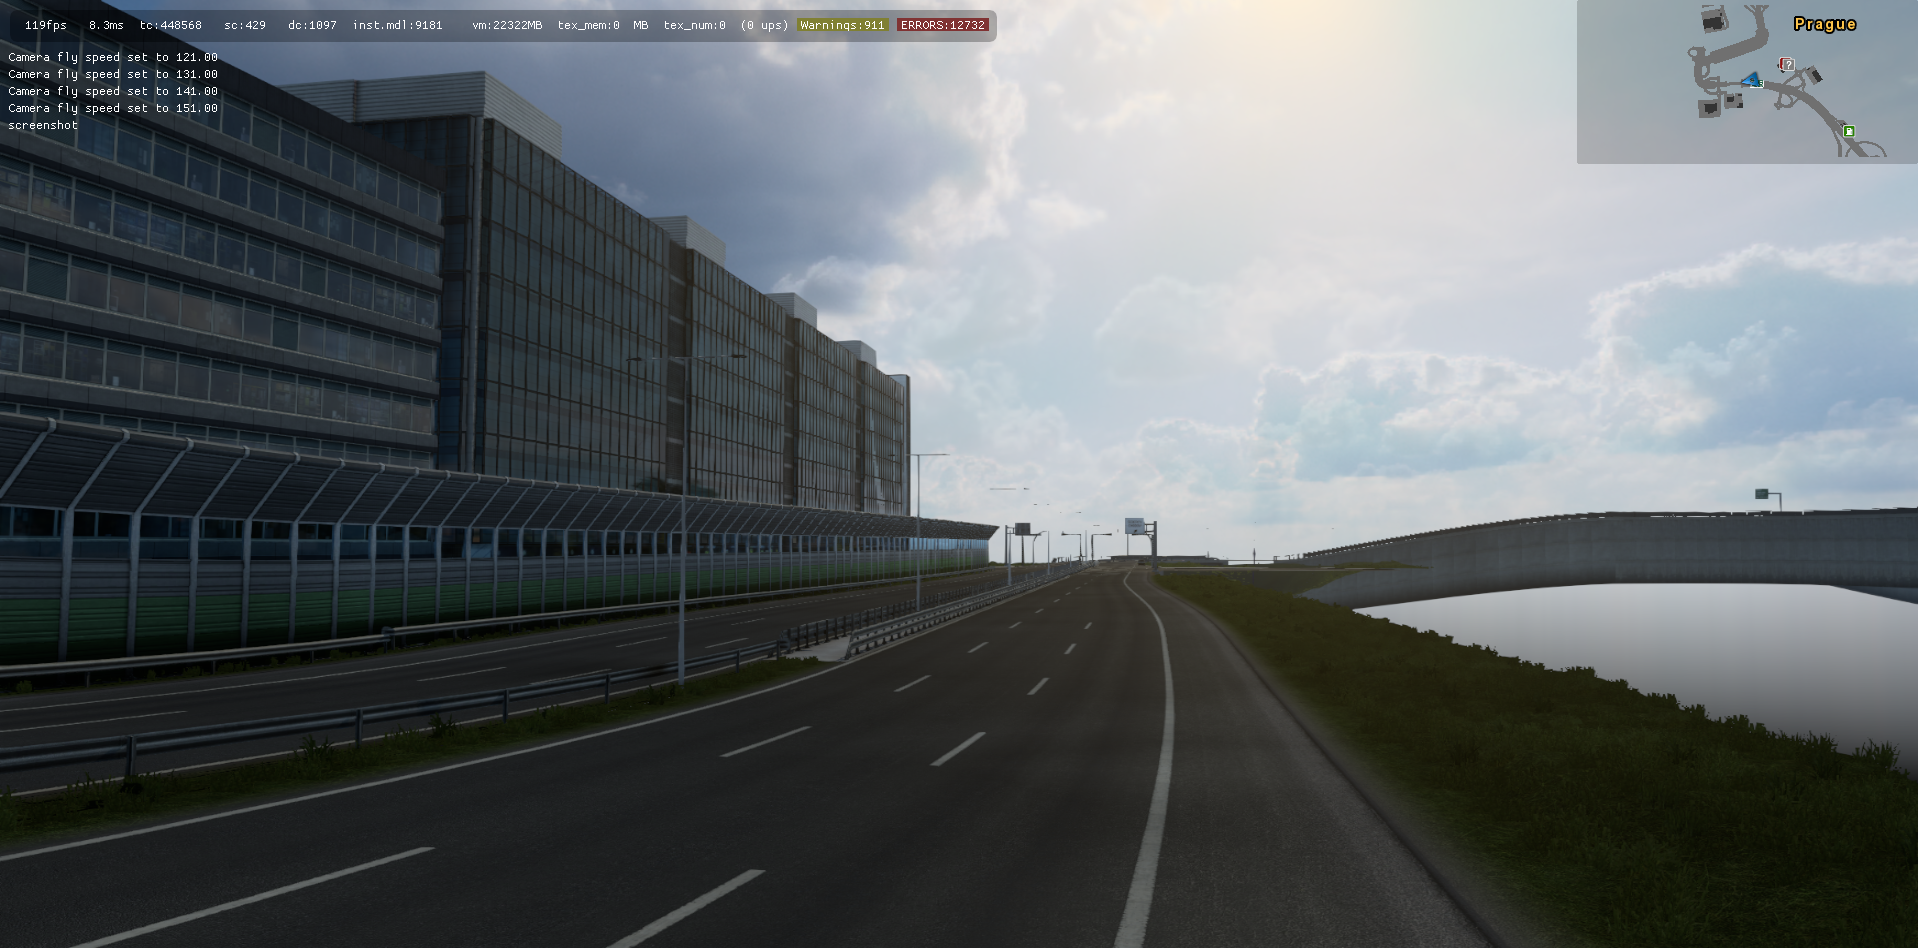 ets2_20210508_145856_00.png